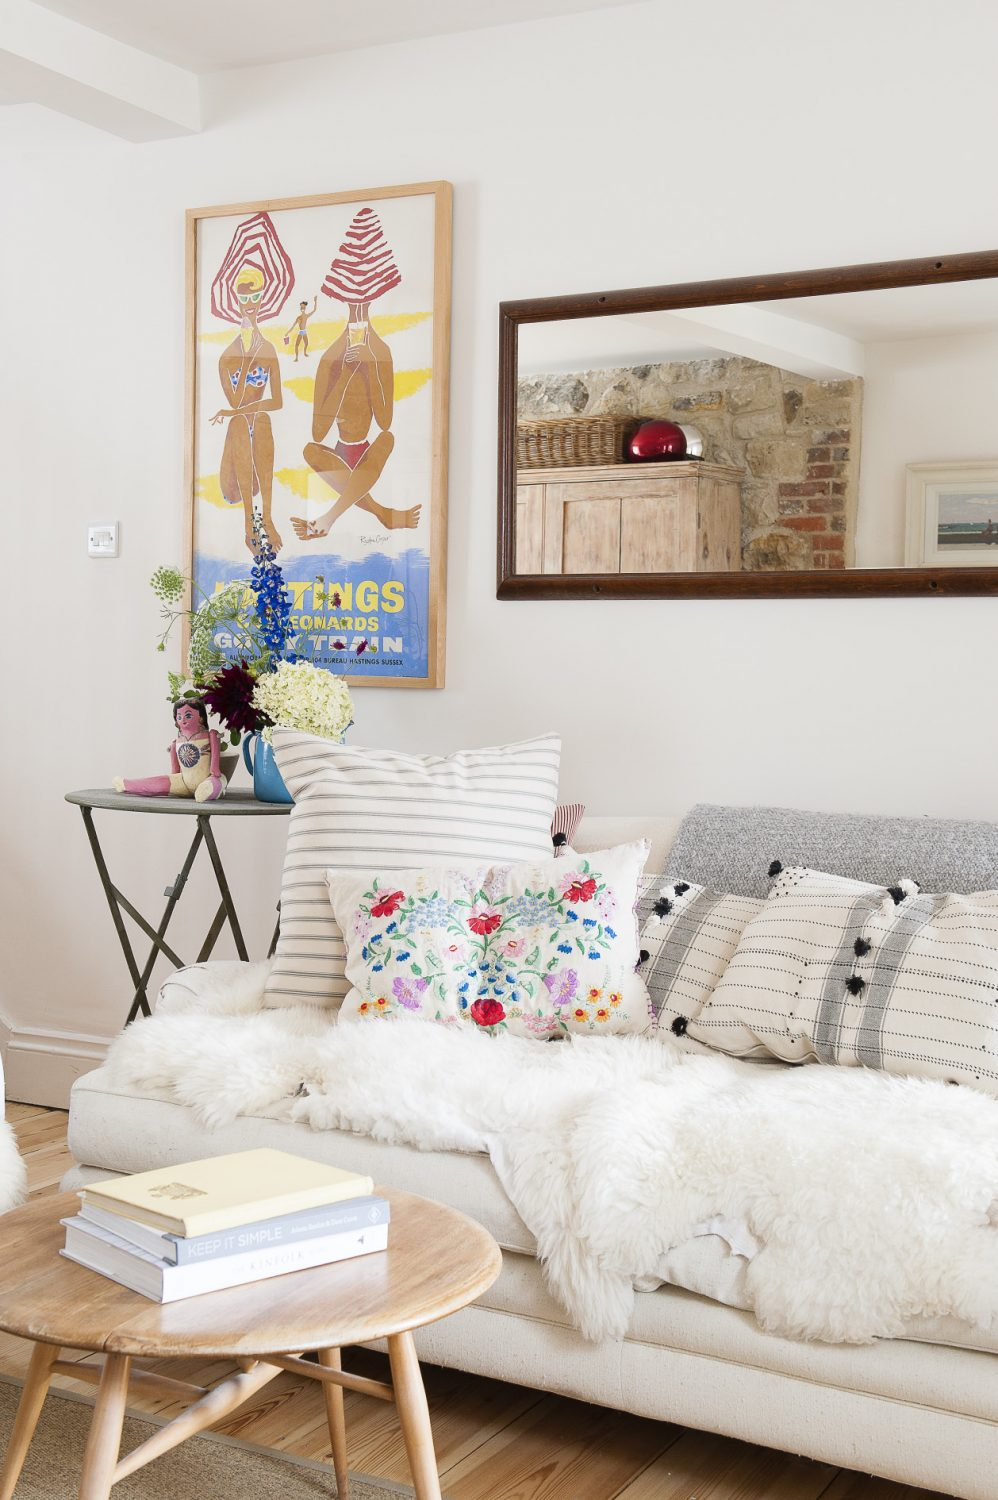 In the main room, the theme of white walls and vintage items in bright and pretty colours creates a space that is both intriguing and tranquil